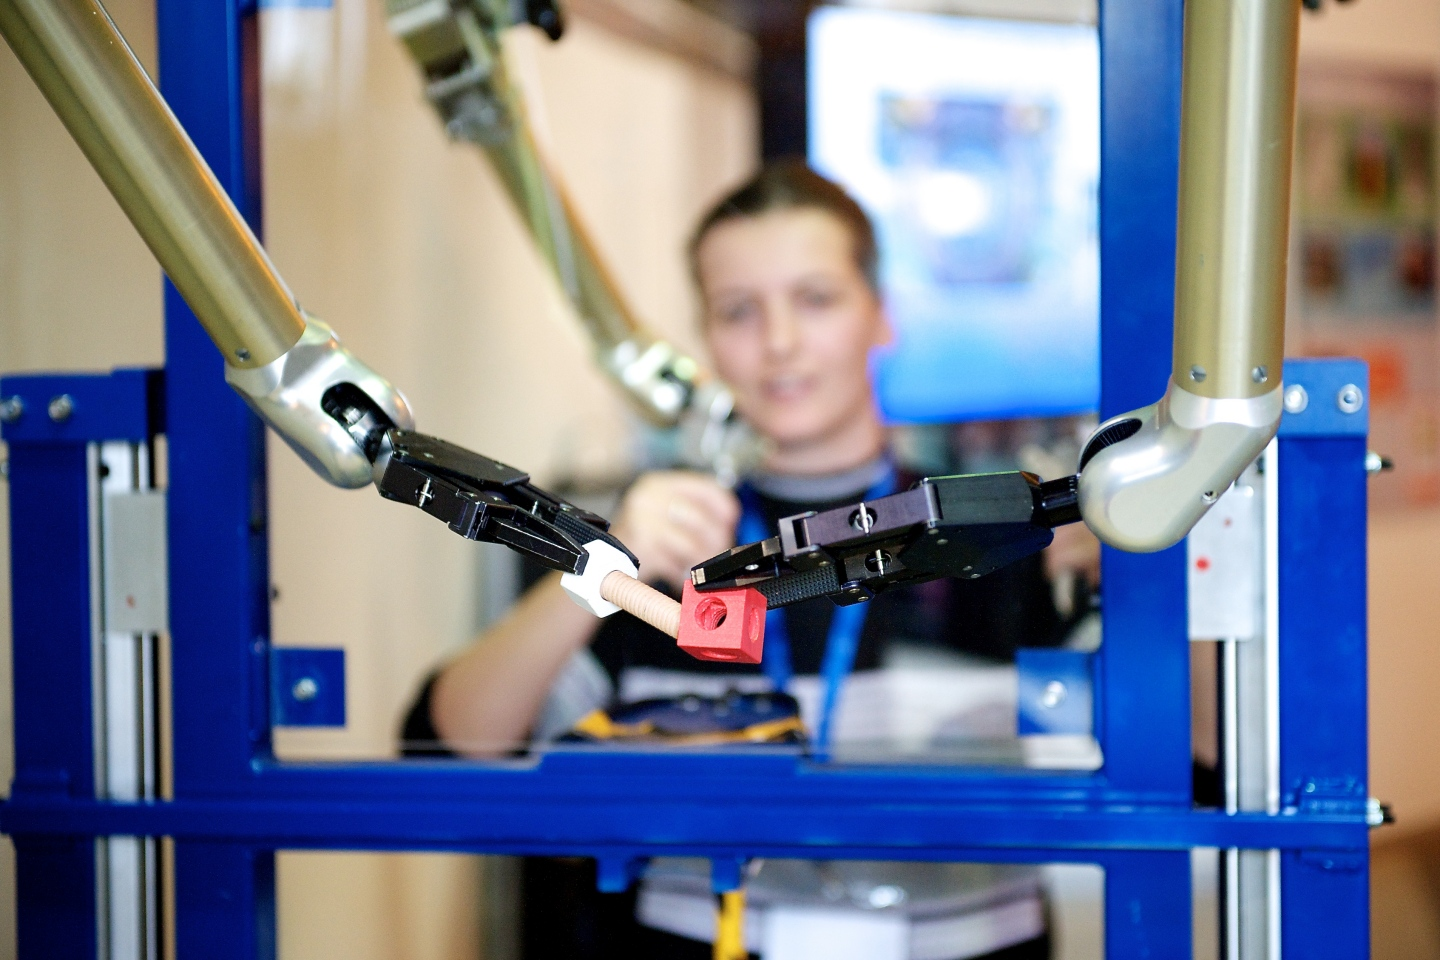 Visitor playing with robotic machine in metrology lab.